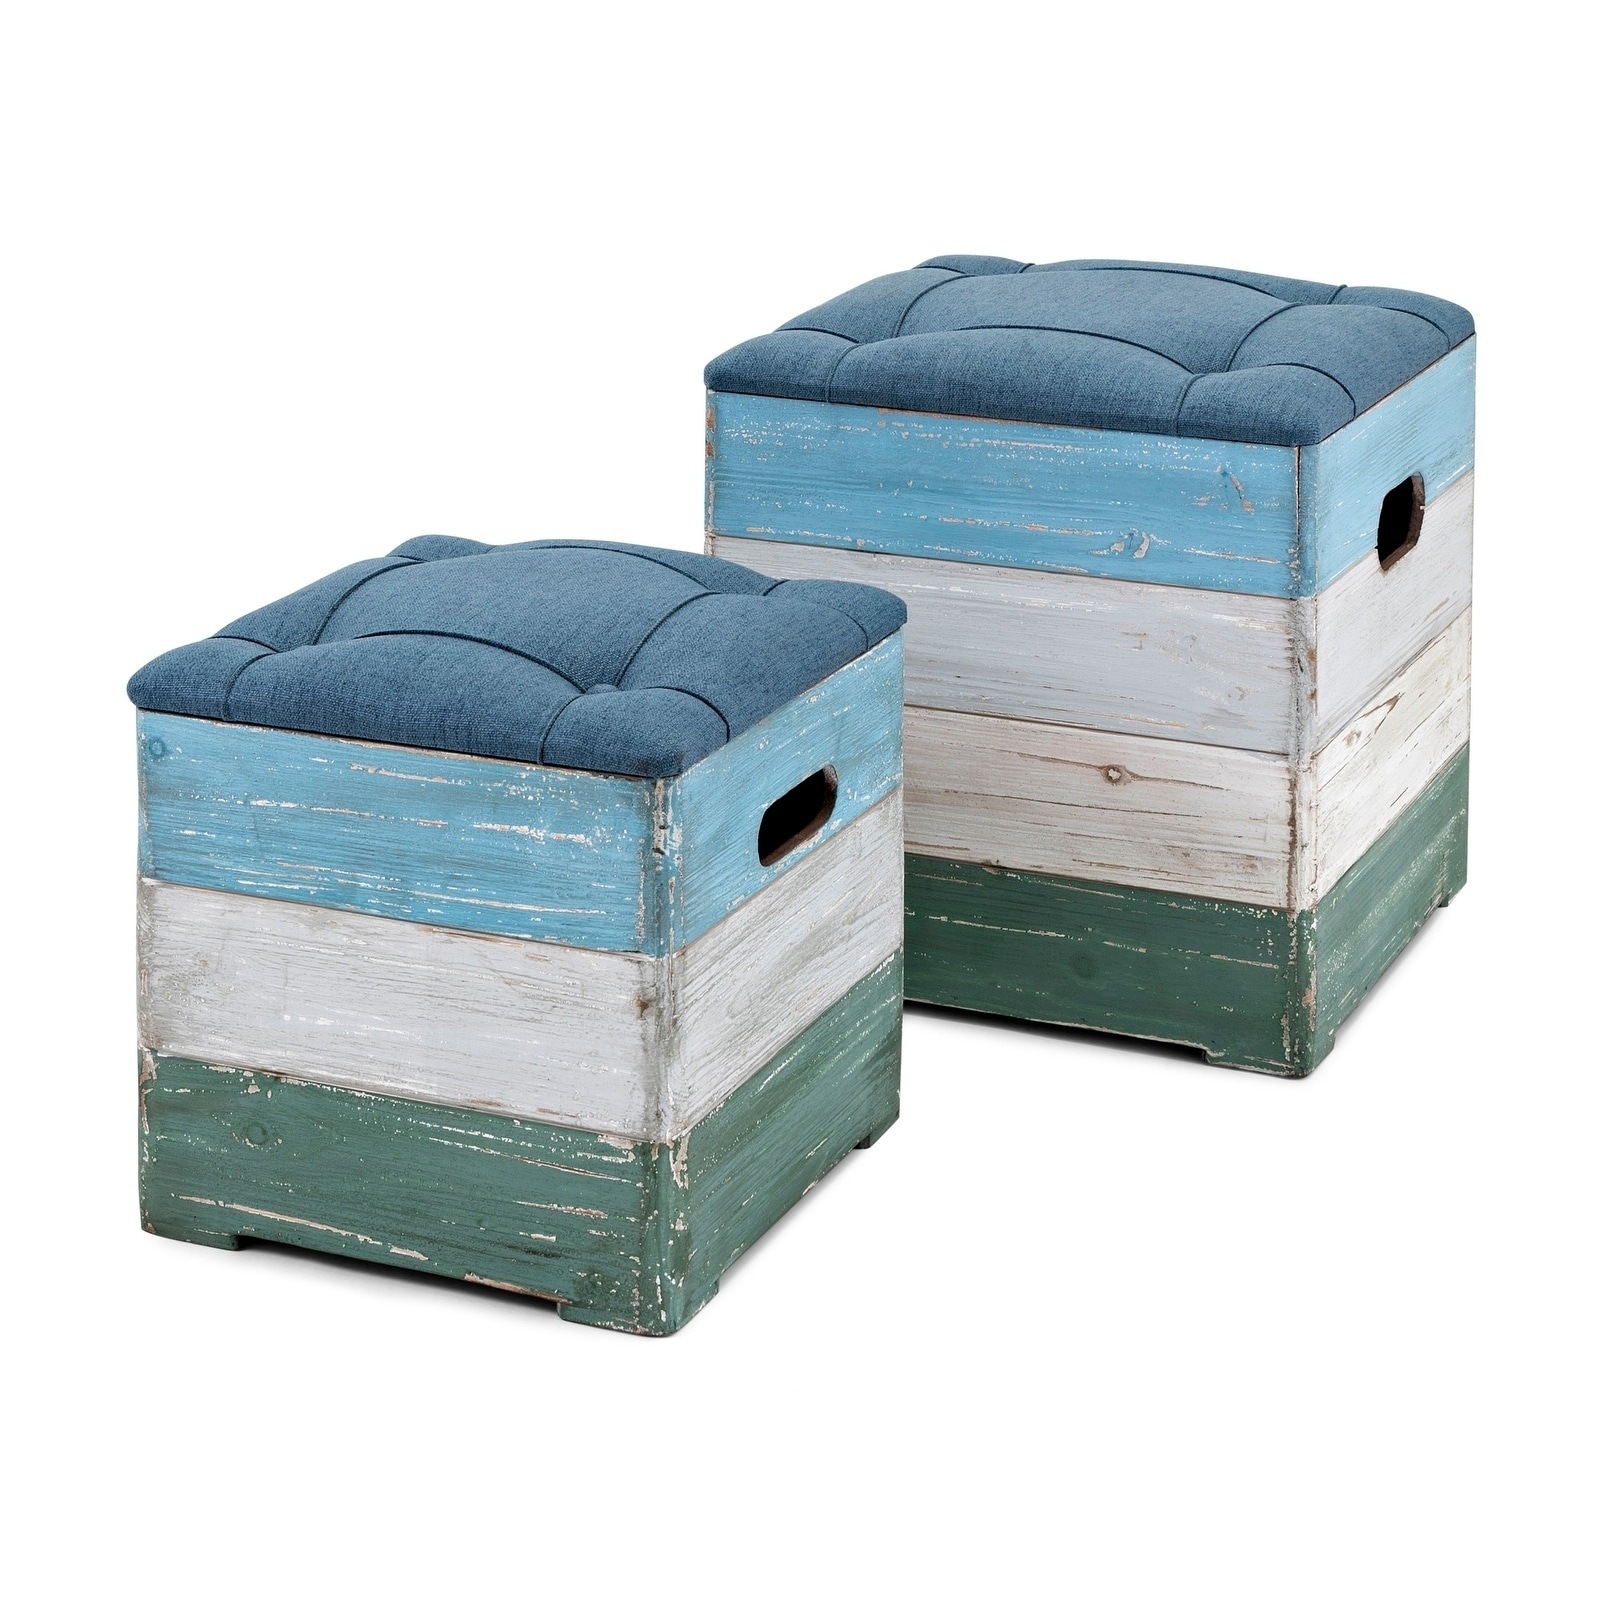 Brilliant Delta Multi Color Wood Crate Ottomans Set Of 2 Caraccident5 Cool Chair Designs And Ideas Caraccident5Info